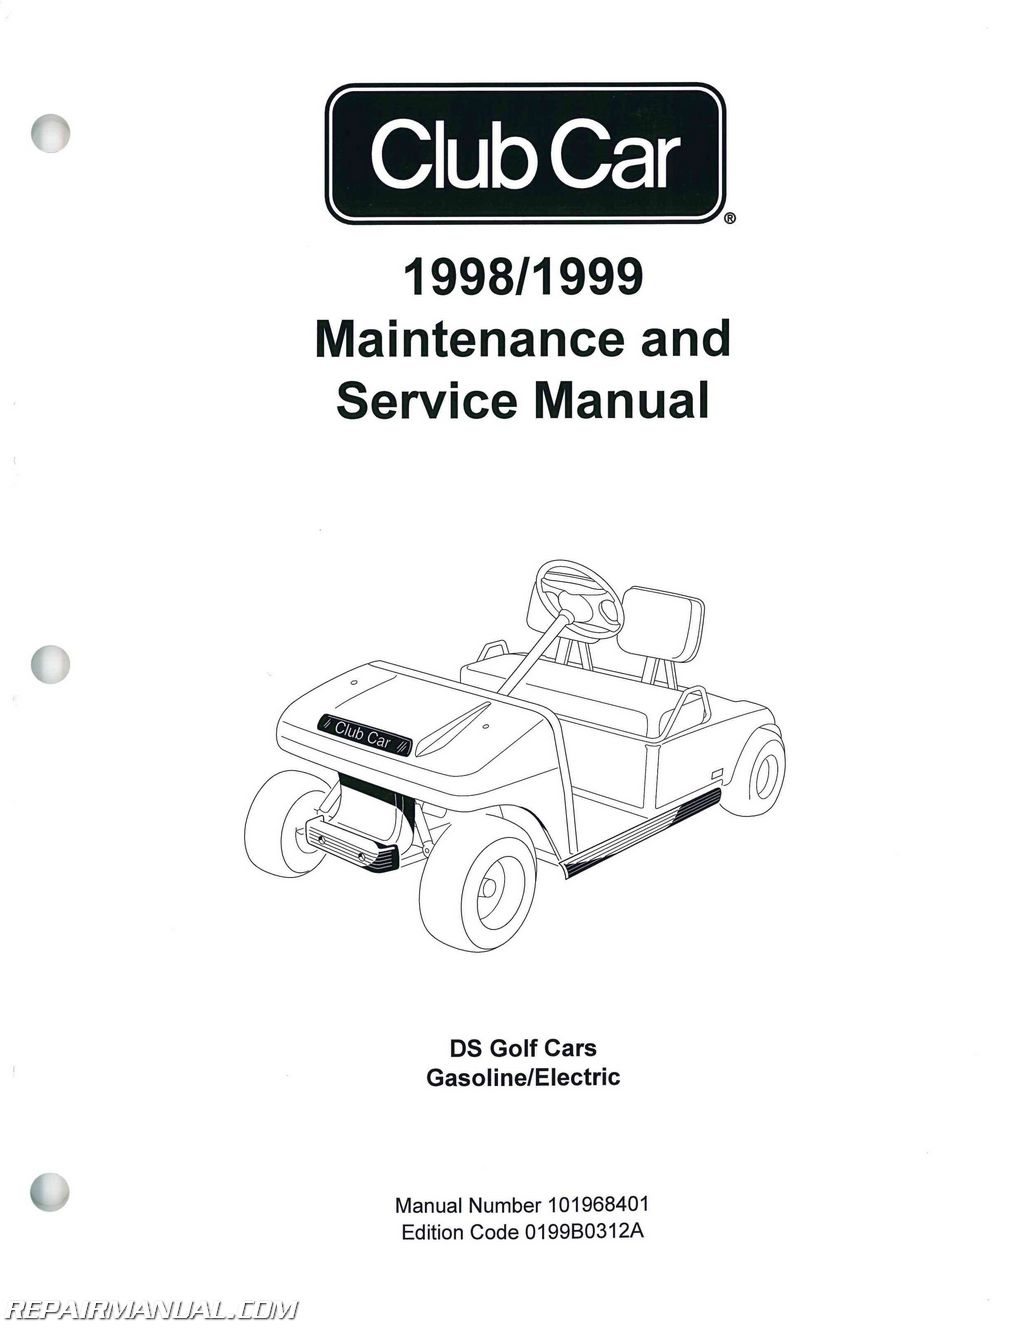 1998 1999 Club Car DS Golf Car Service Manual club car golf cart manuals repair manuals online club car carryall turf 2 wiring diagram at n-0.co